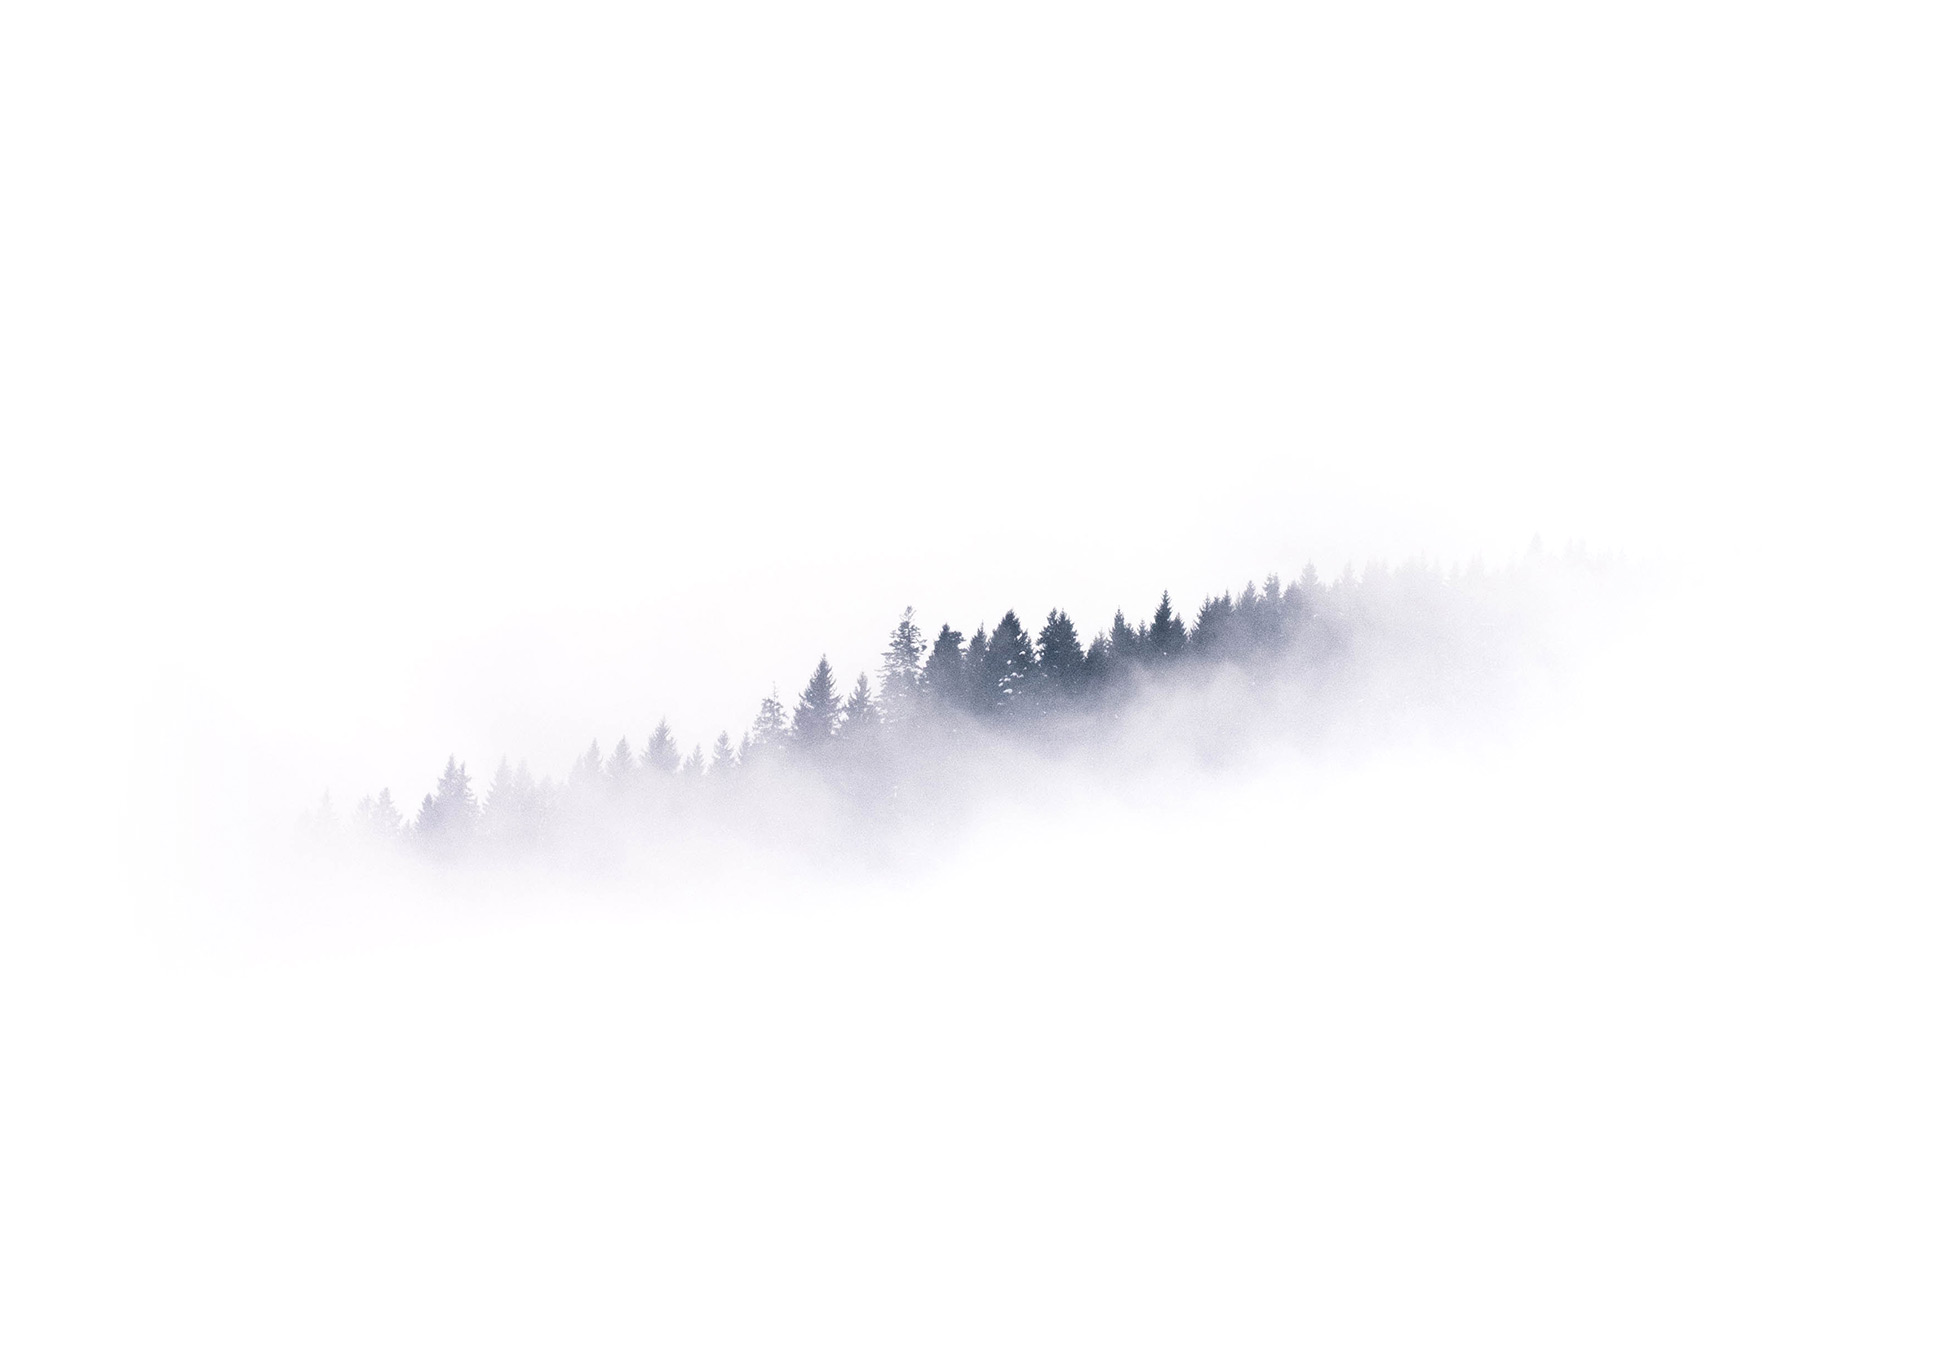 Background image of a foggy forest